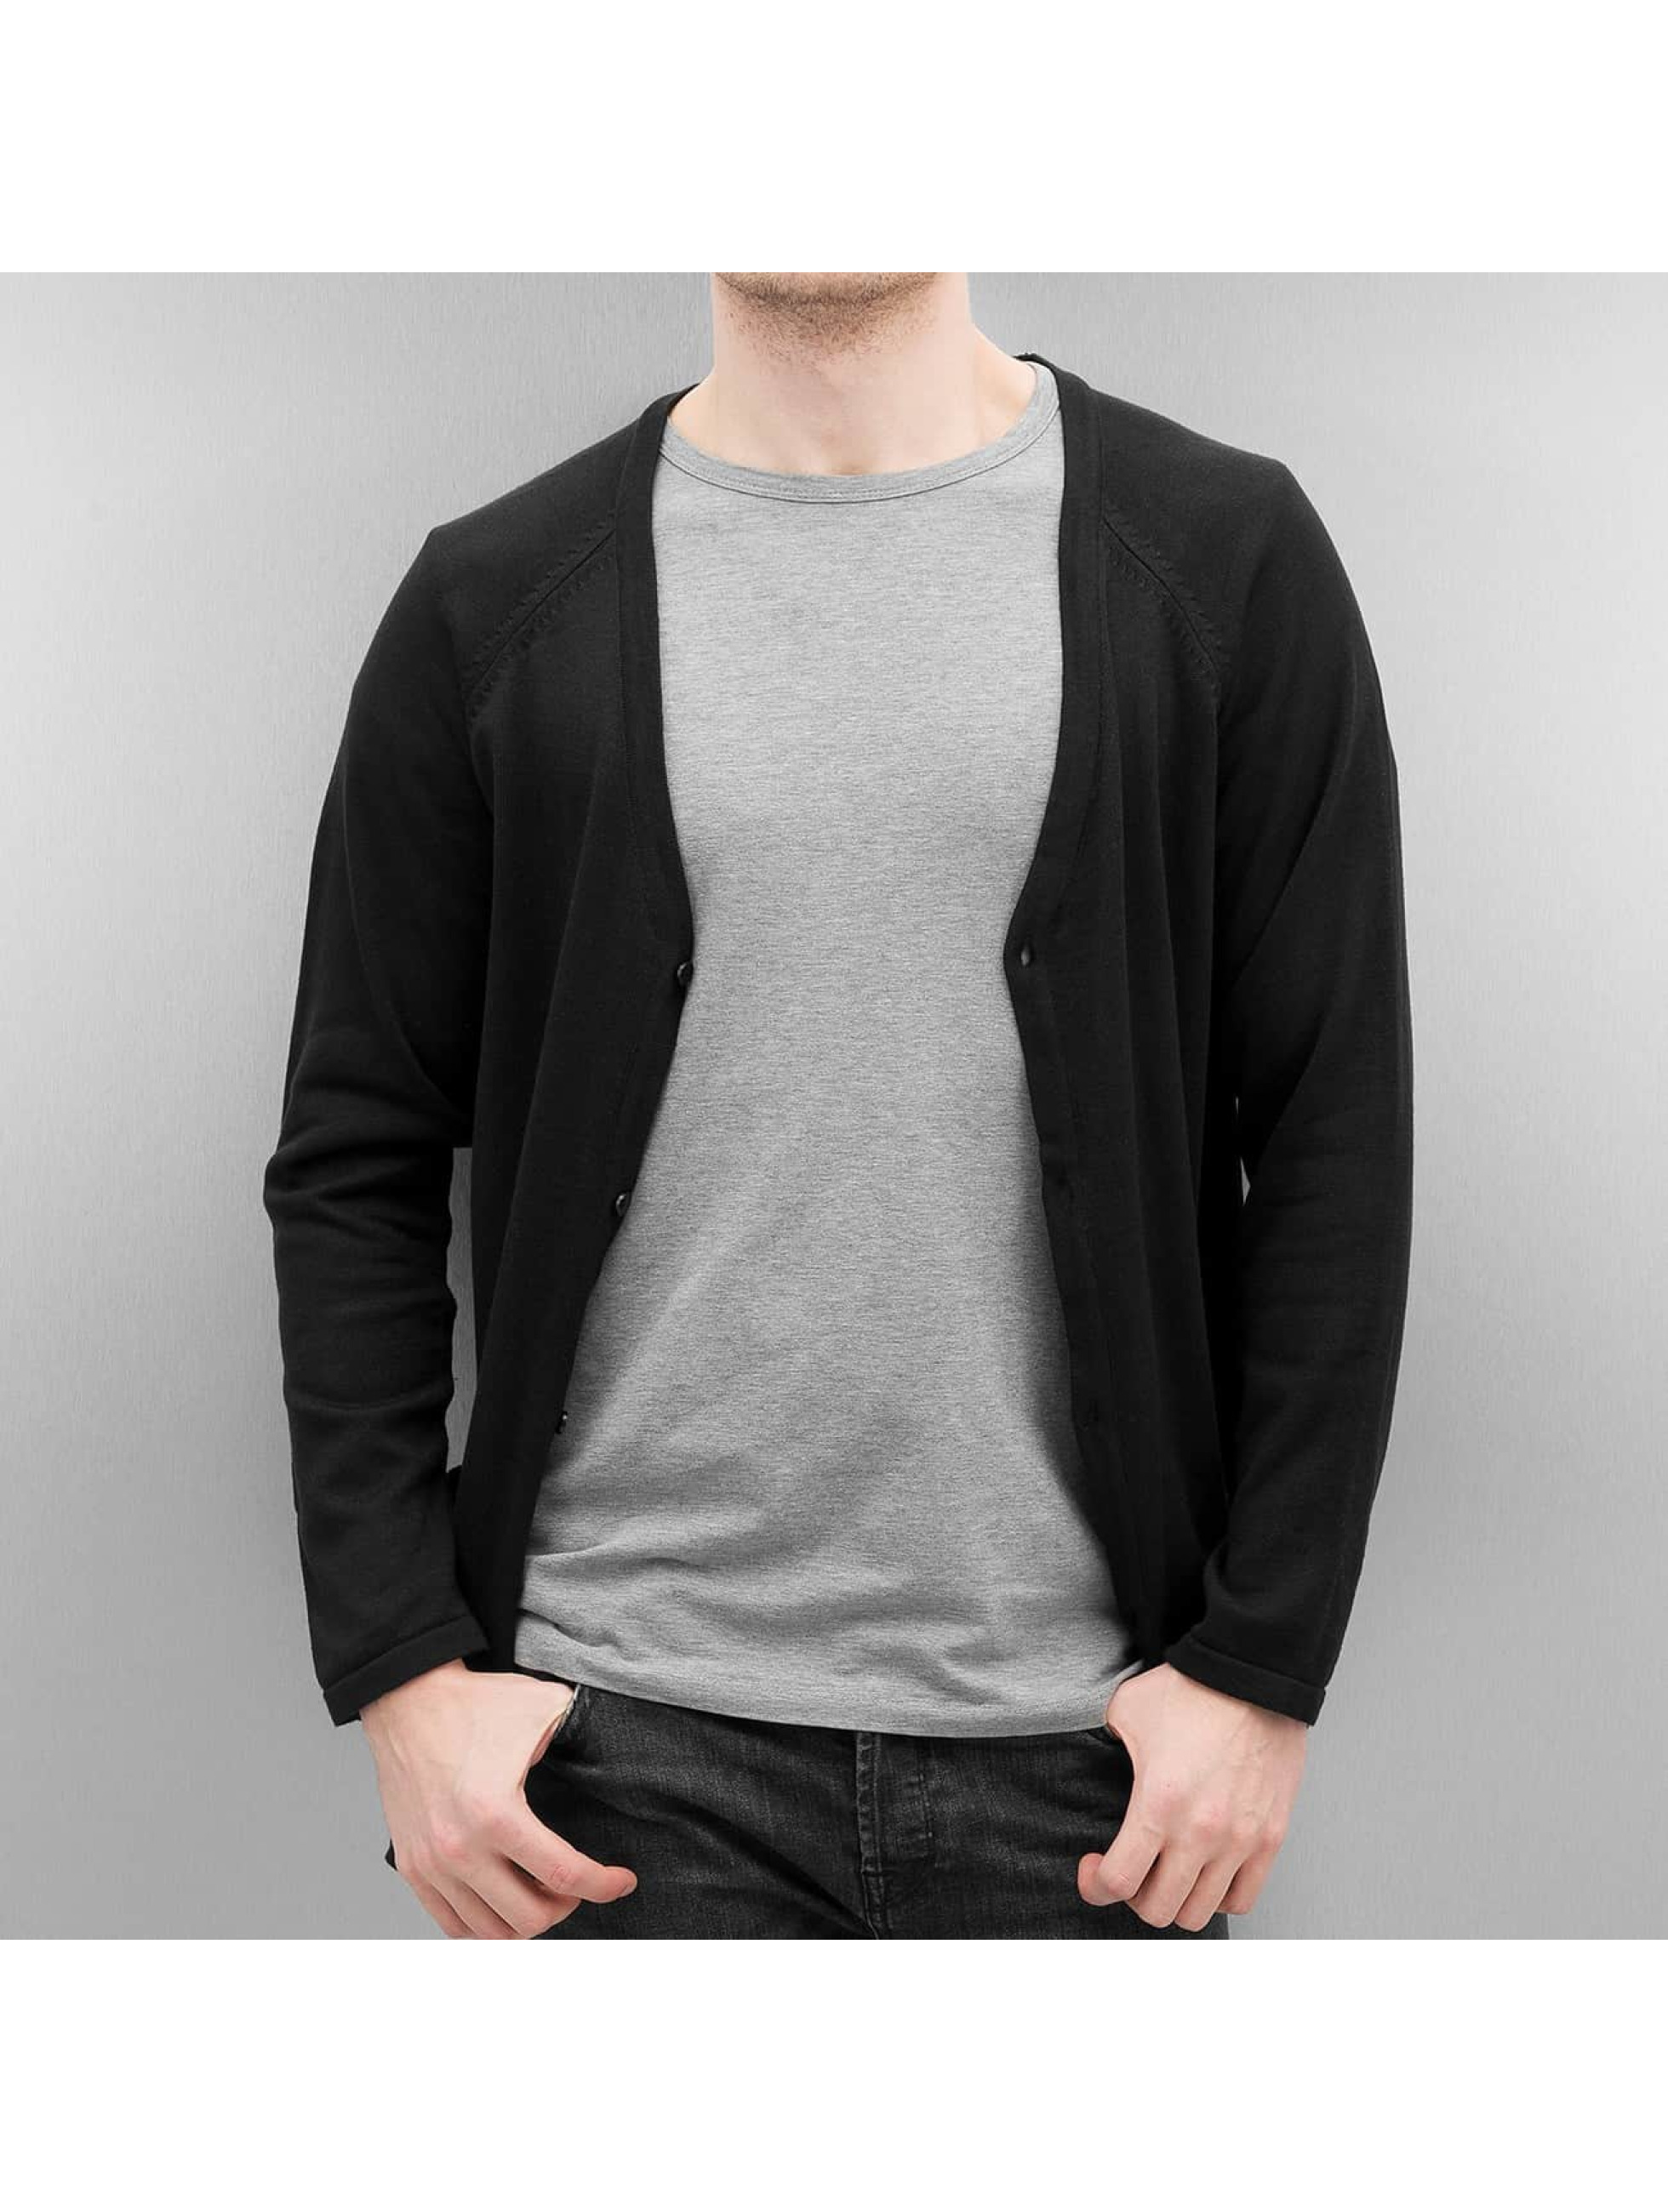 Cazzy Clang / Cardigan Basic in black M